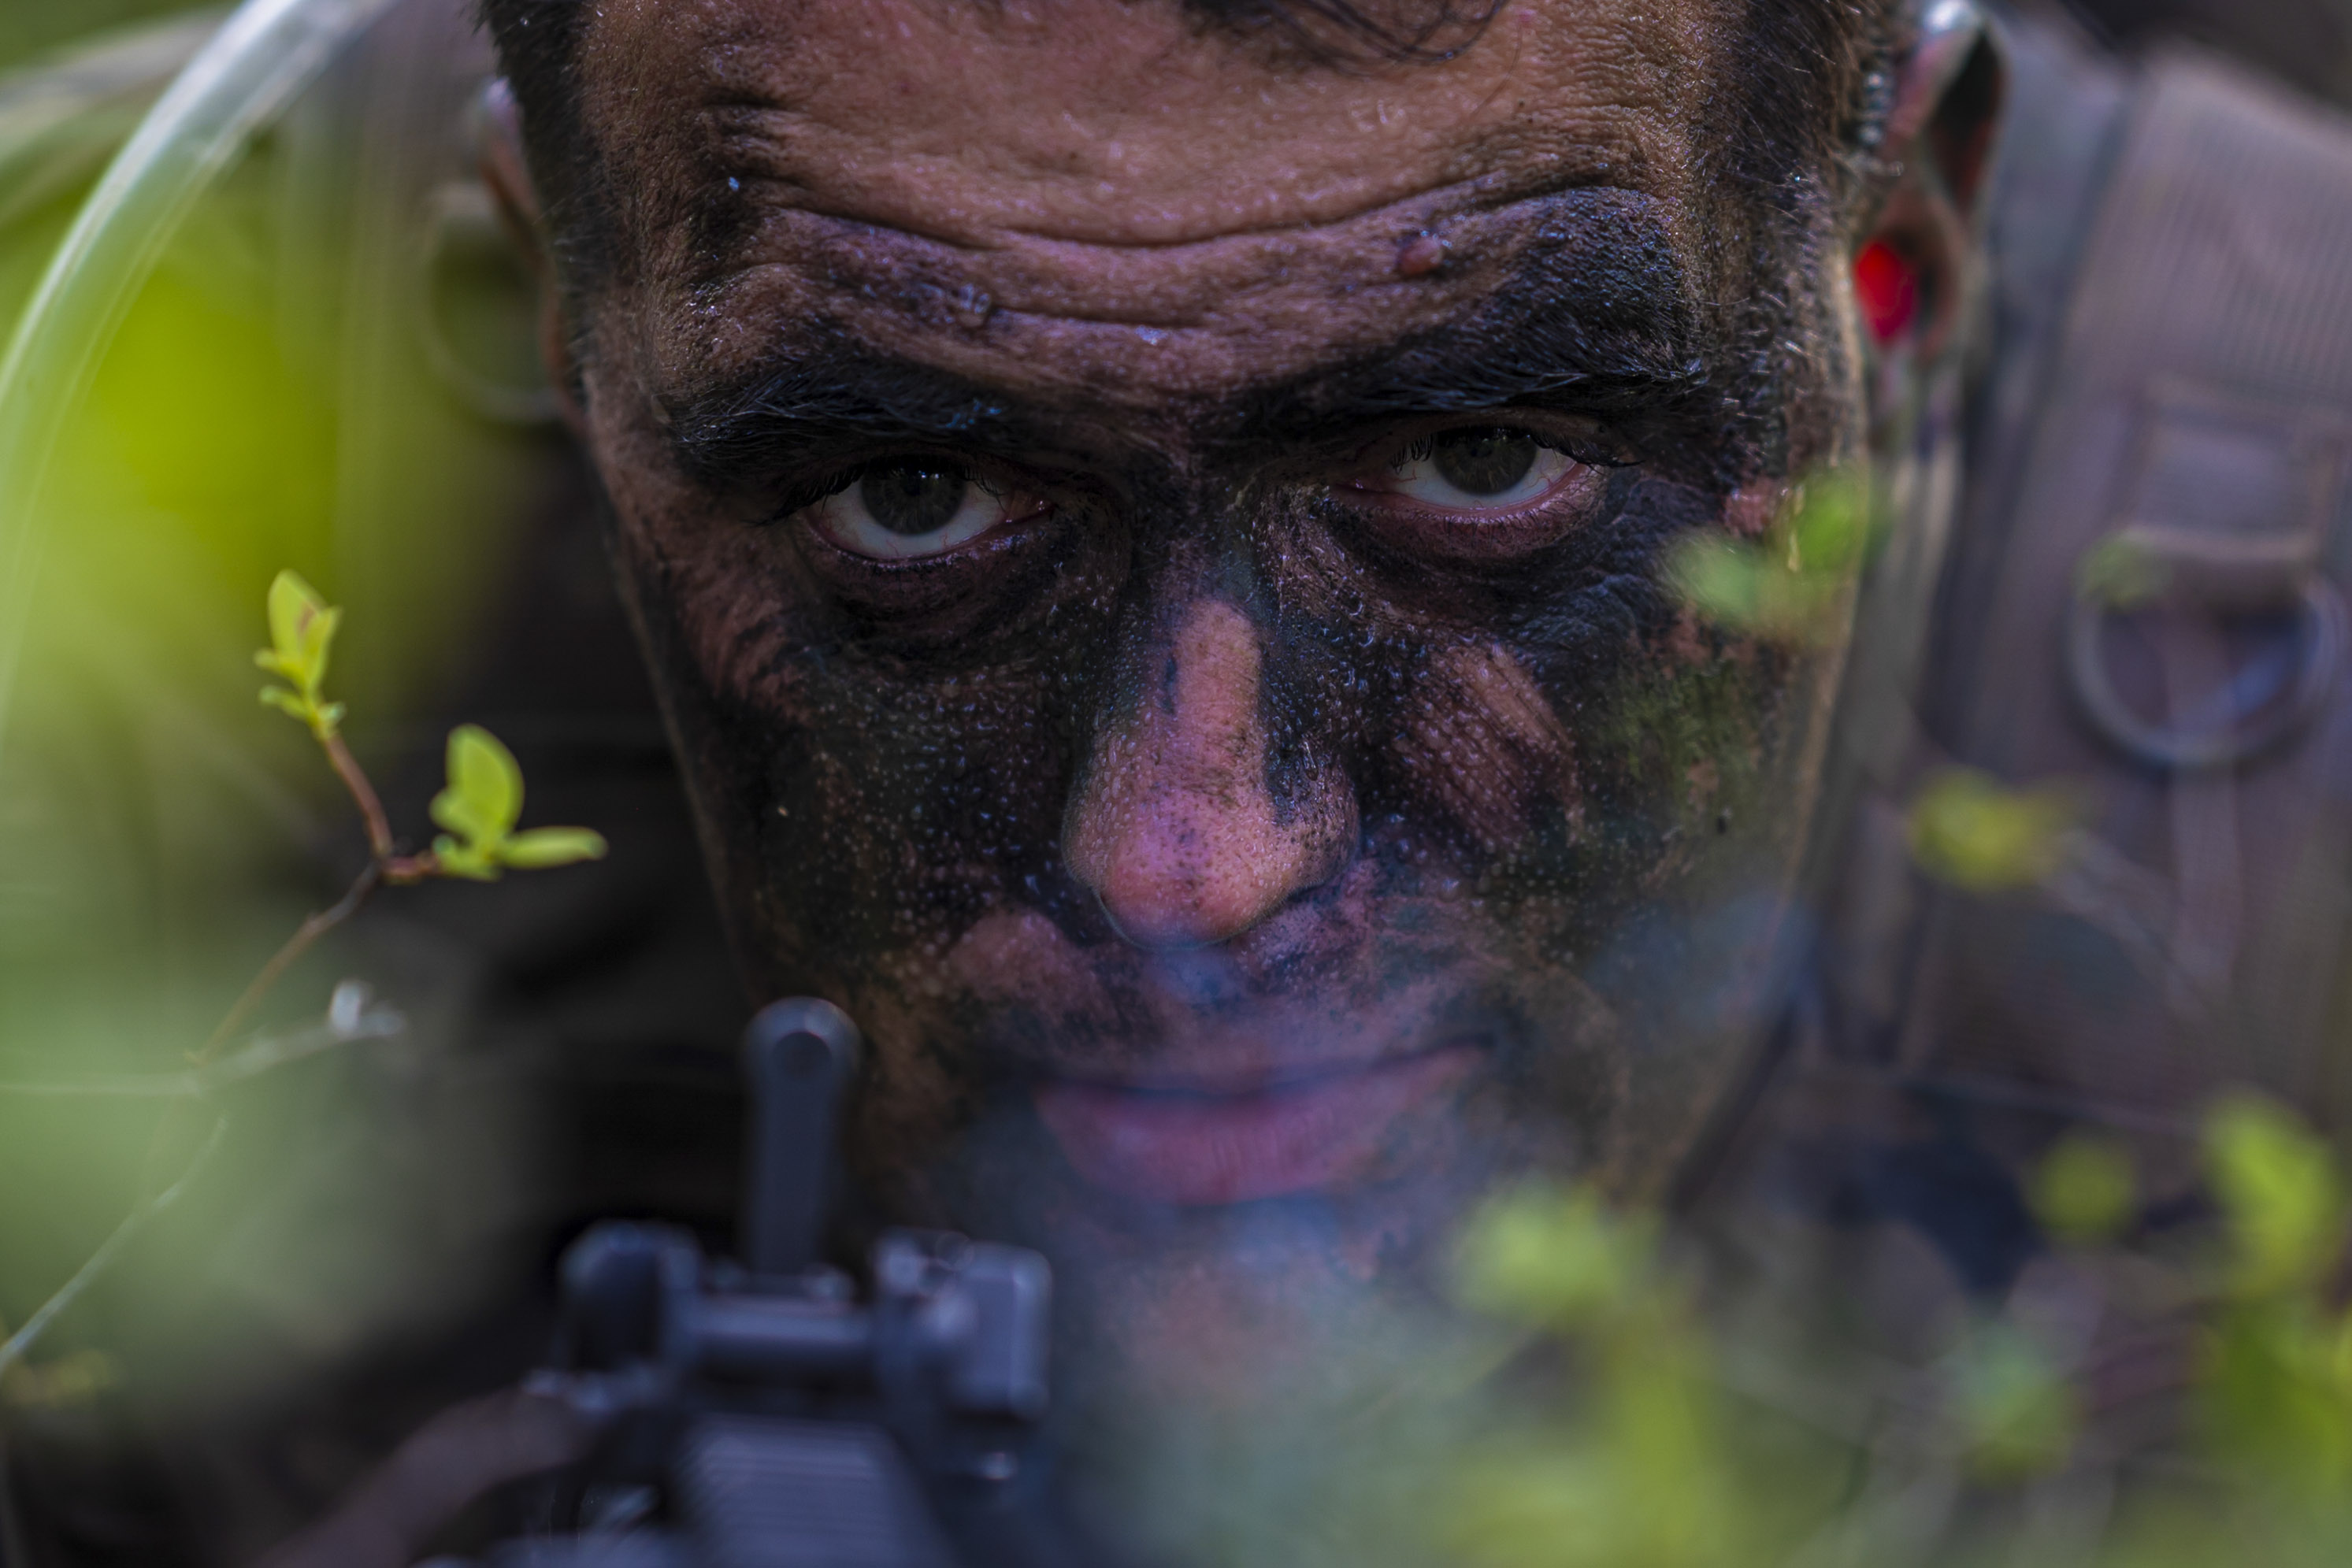 Active-duty, National Guard and Army Reserve soldiers conduct a training exercise during the 1-254th Regional Training Institute's Infantry Advanced Leaders Course on Joint Base McGuire-Dix-Lakehurst, N.J., June 26. (Spc. Michael Schwenk/Army National Guard)